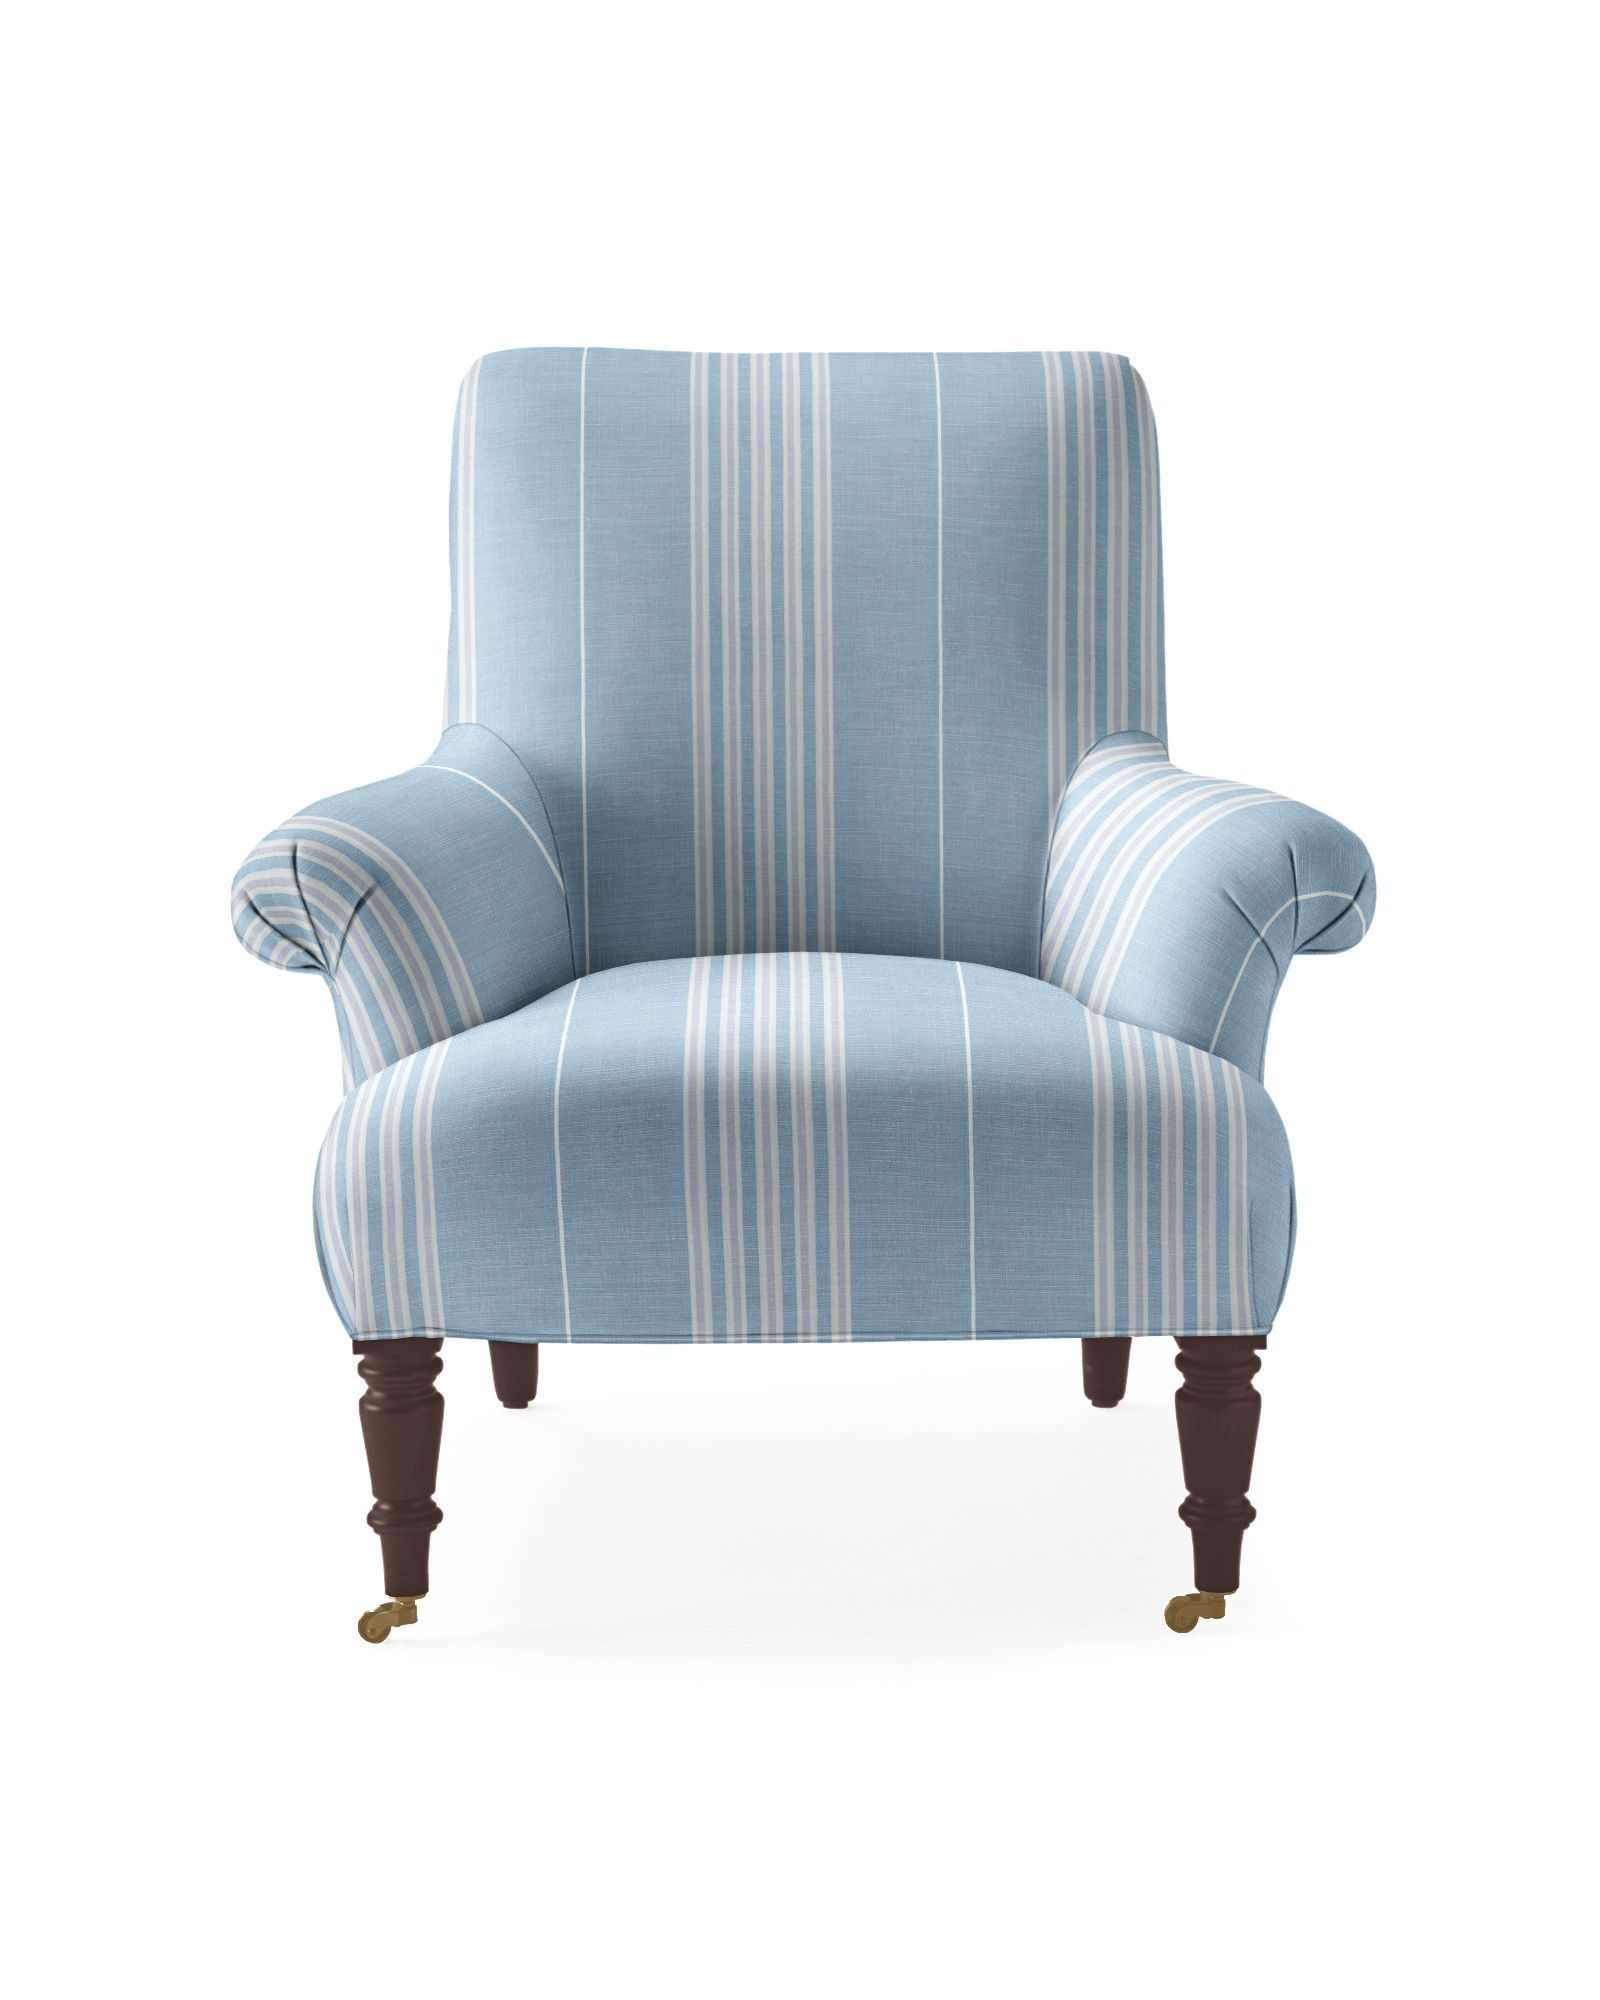 Avignon Chair - Perennials Coastal/Sky Lake Stripe,